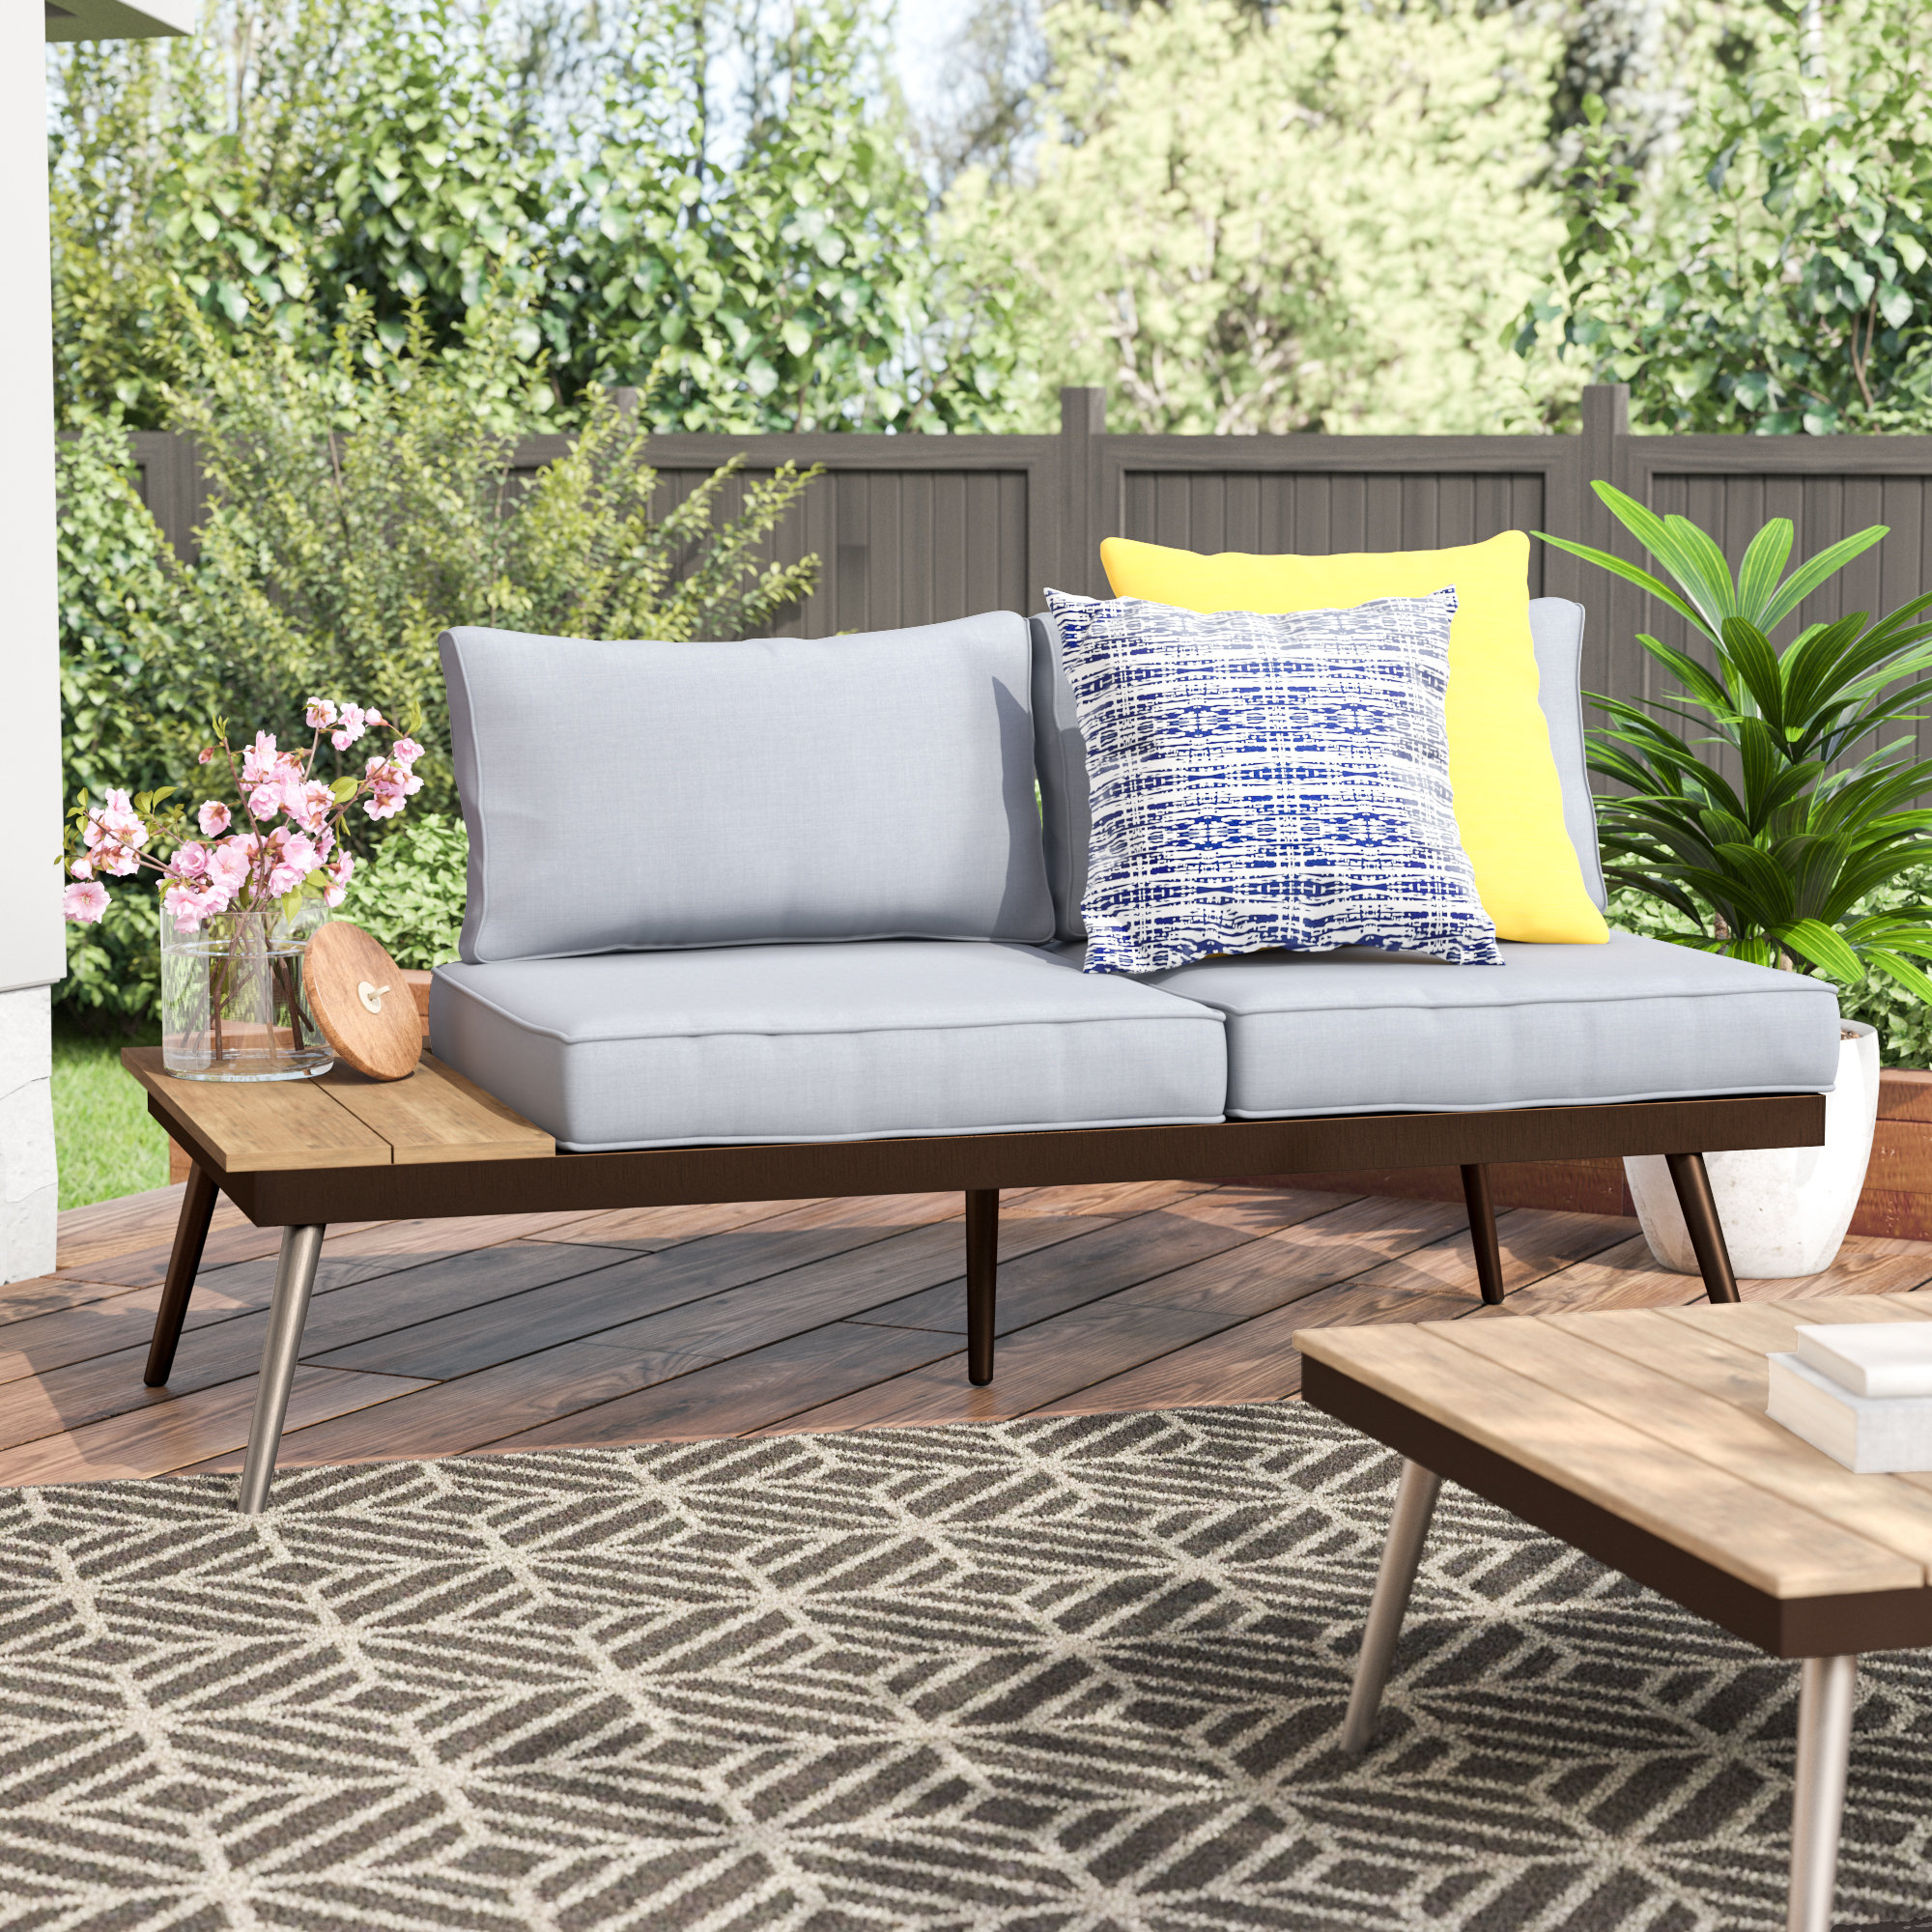 Popular Bullock Outdoor Wooden Loveseats With Cushions In Bendale Contemporary Loveseat With Cushion (View 19 of 20)